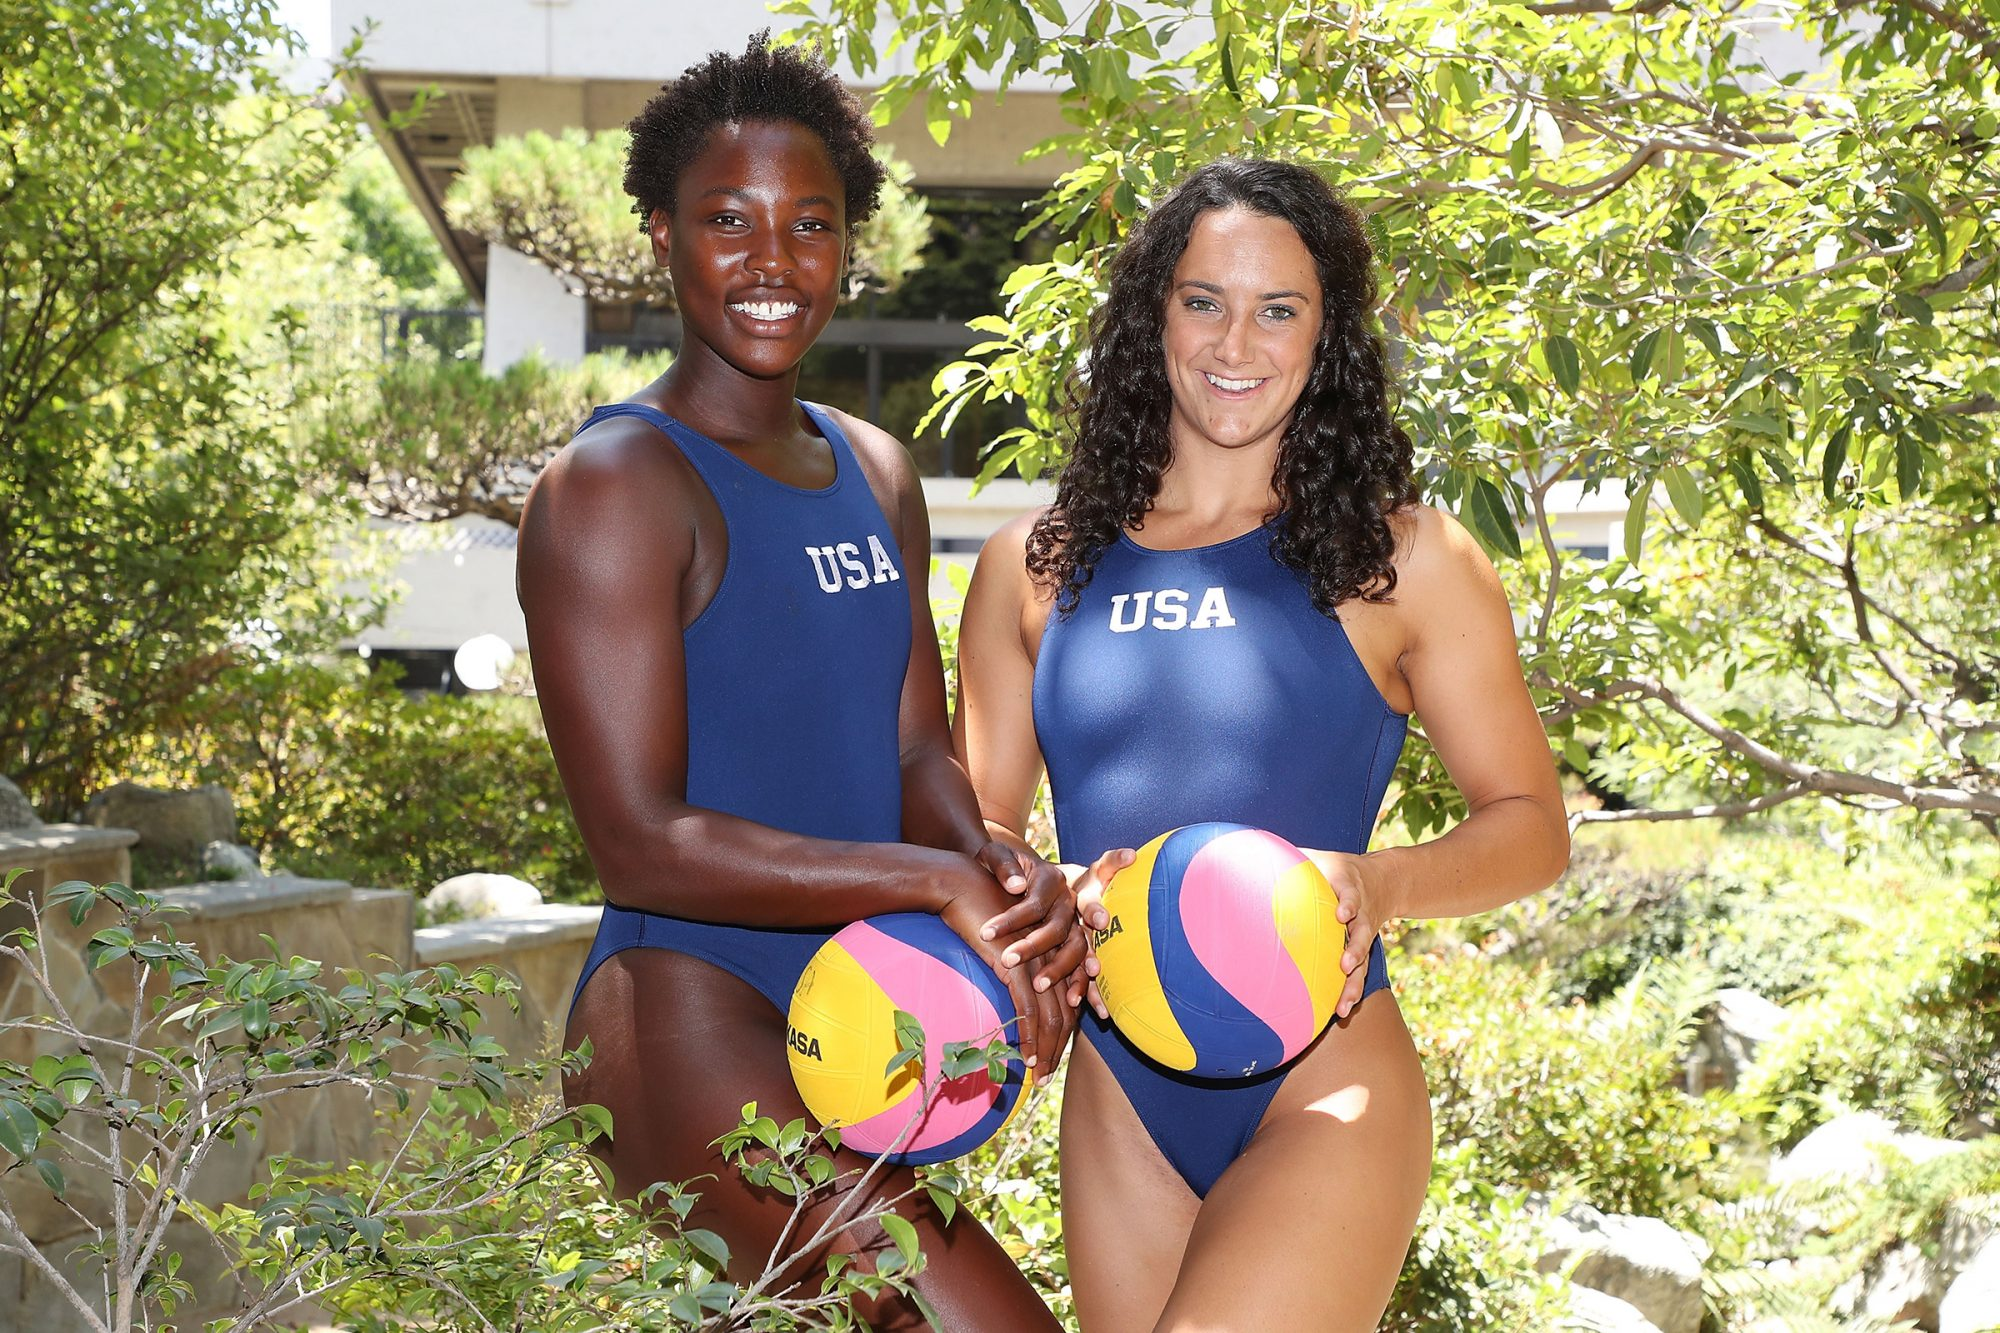 Ashleigh Johnson and Maggie Steffens